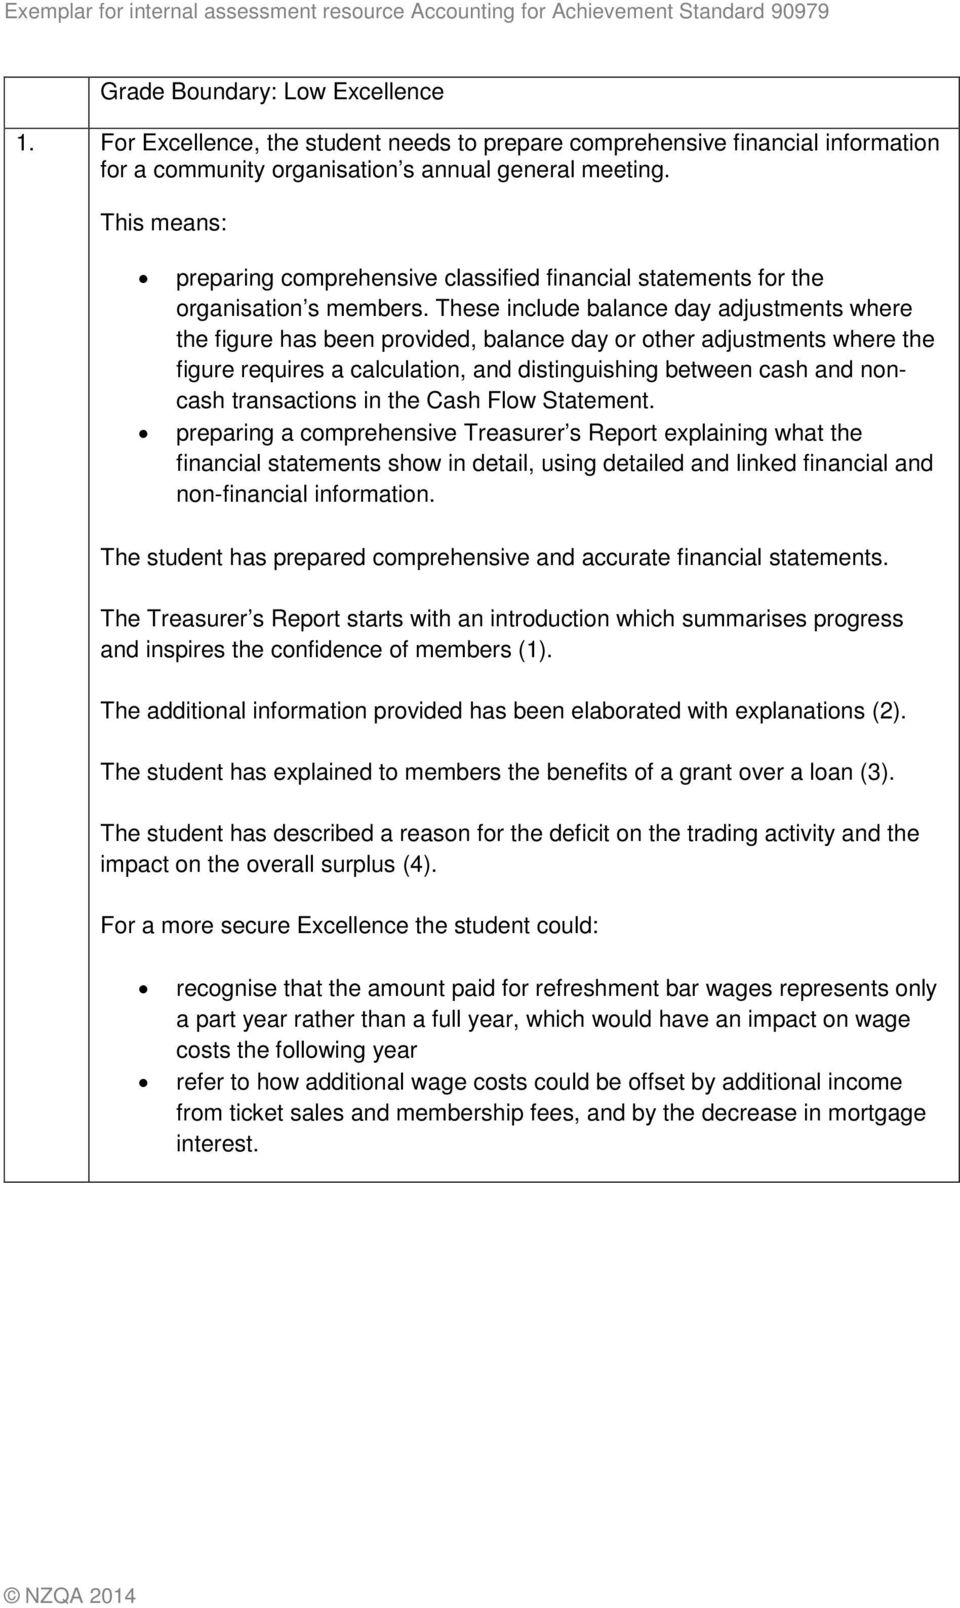 exemplar for internal achievement standard accounting level 1 pdf